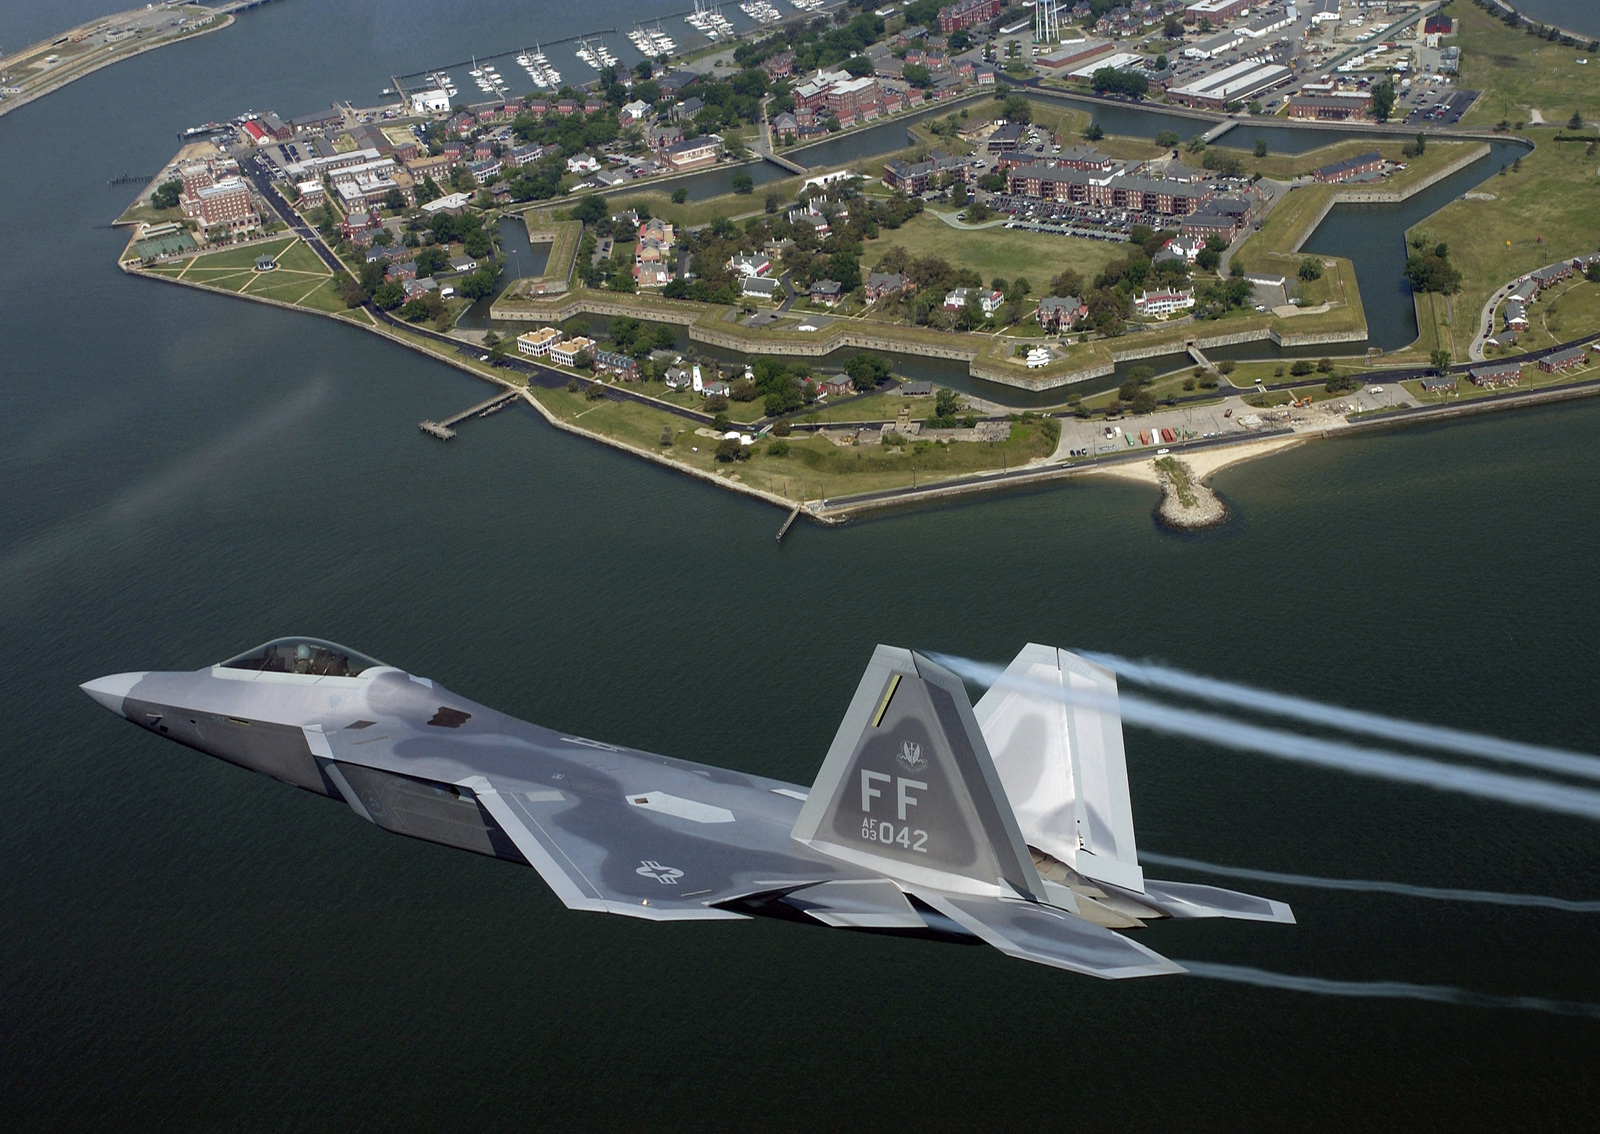 U.S. Air Force LT. COL. James Hecker, Commander, 27th Fighter Squadron, delivers the first operational F/A-22 Raptor to its permanent home at Langley Air Force Base, Va., May 12, 2005.  Tail number 4042 marks the first of 26 Raptors to be deliverd to the 27th Fighter Squadron. (U.S. Air Force photo by TECH SGT. Ben Bloker) (Released)